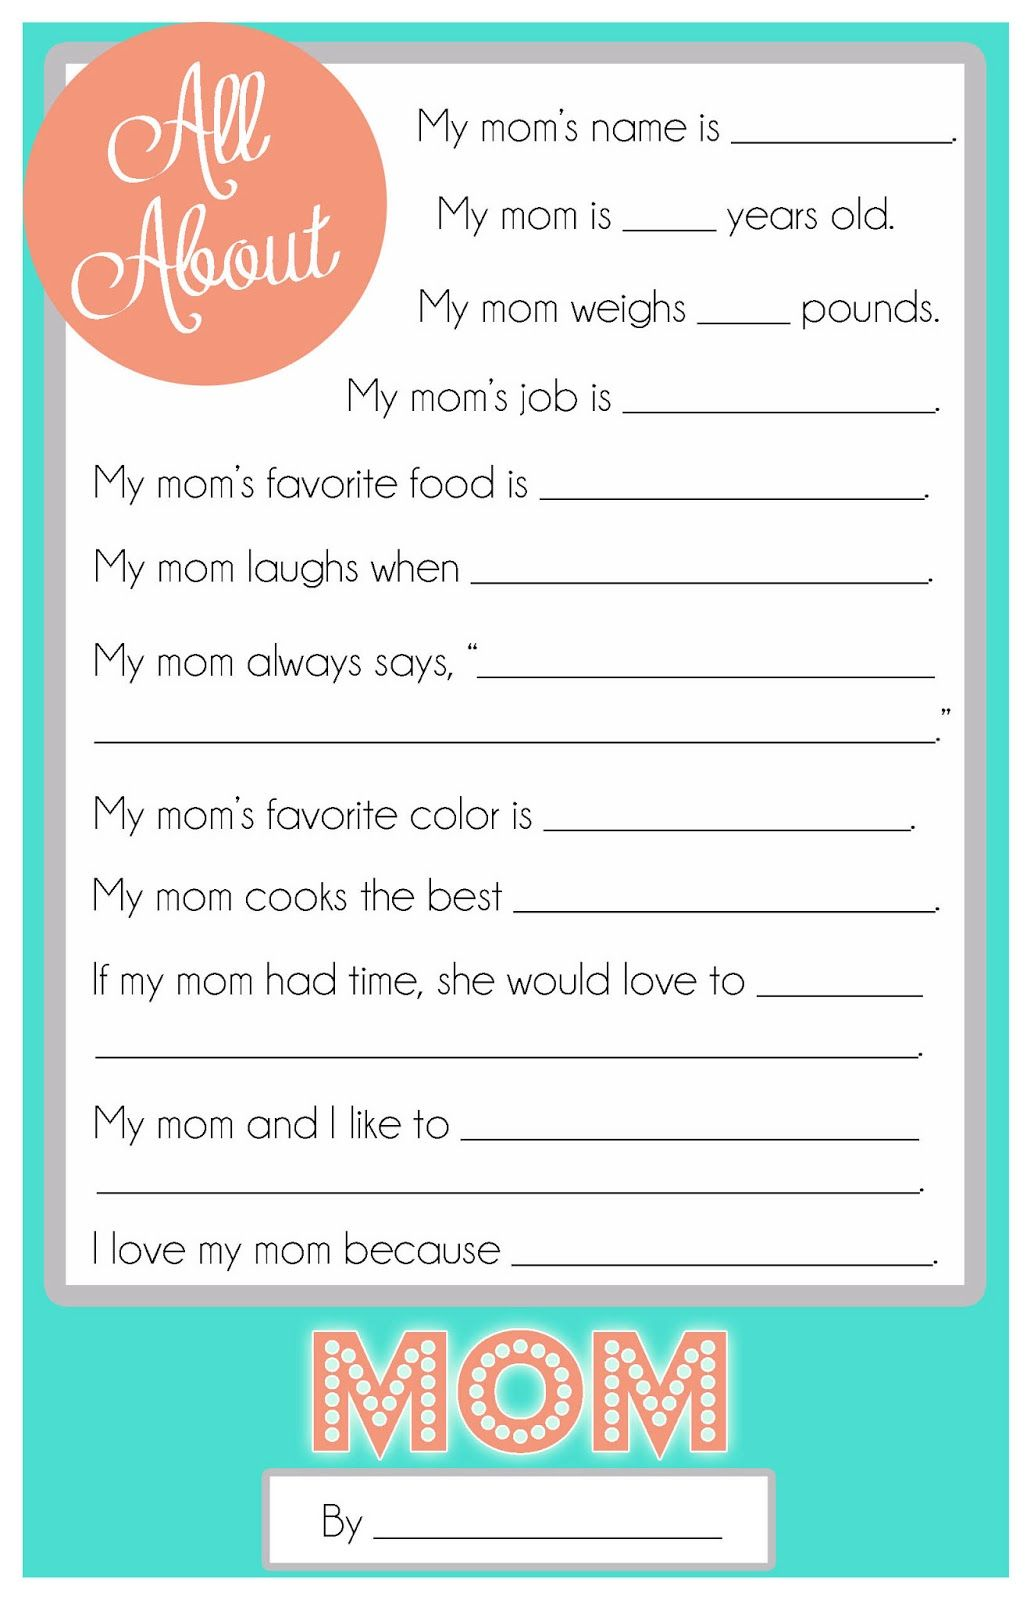 mother s day questionnaire a printable for the kids mother s day questionnaire a fun and printable for the kids to fill out for